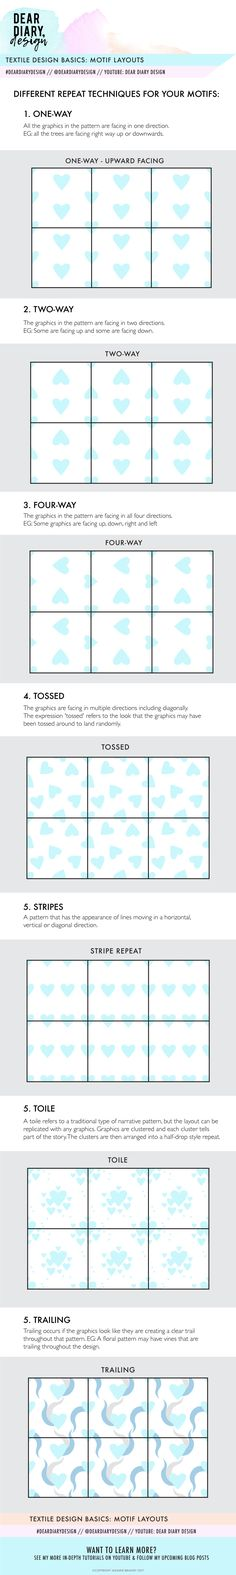 Seamless Pattern Layouts is the second post in a series called Textile Design Basics, that will explain the foundation knowledge needed to create beautiful textile designs for your products and surfaces. Tile Patterns, Print Patterns, Textile Design, Fabric Design, Design Basics, Dear Diary, Illustrator Tutorials, Surface Pattern, Industrial Design